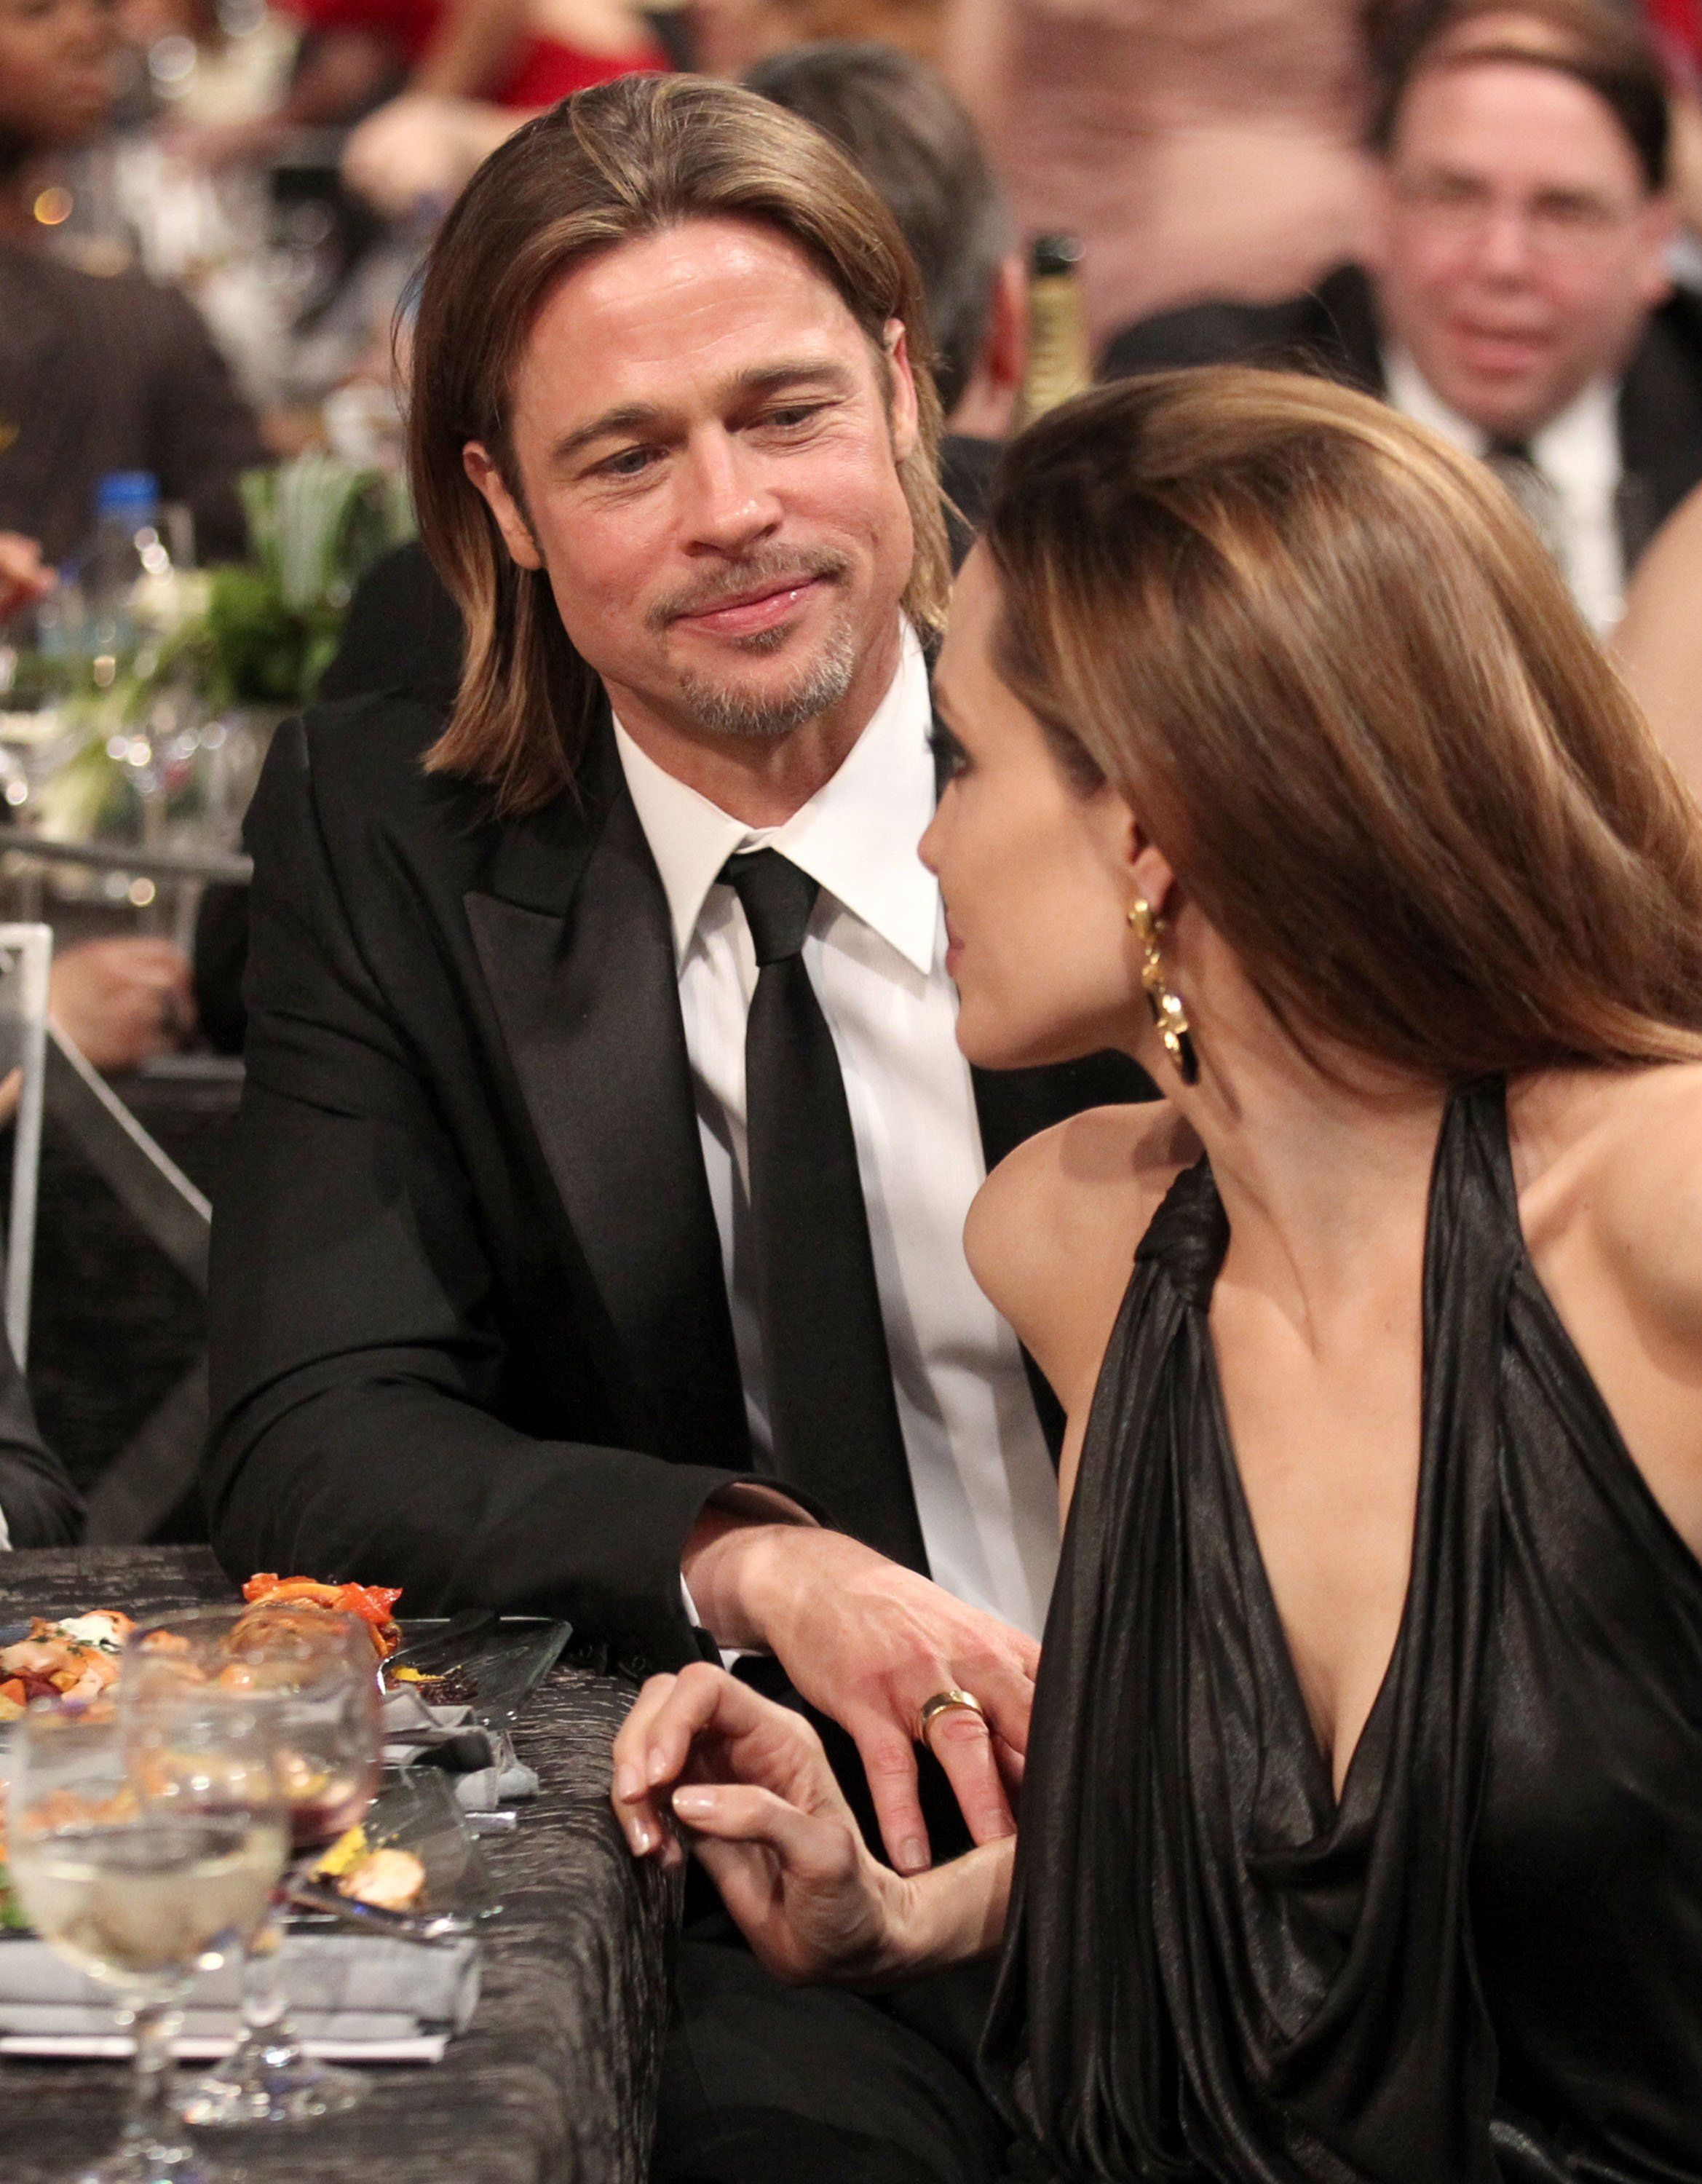 brangelina, love is in the air